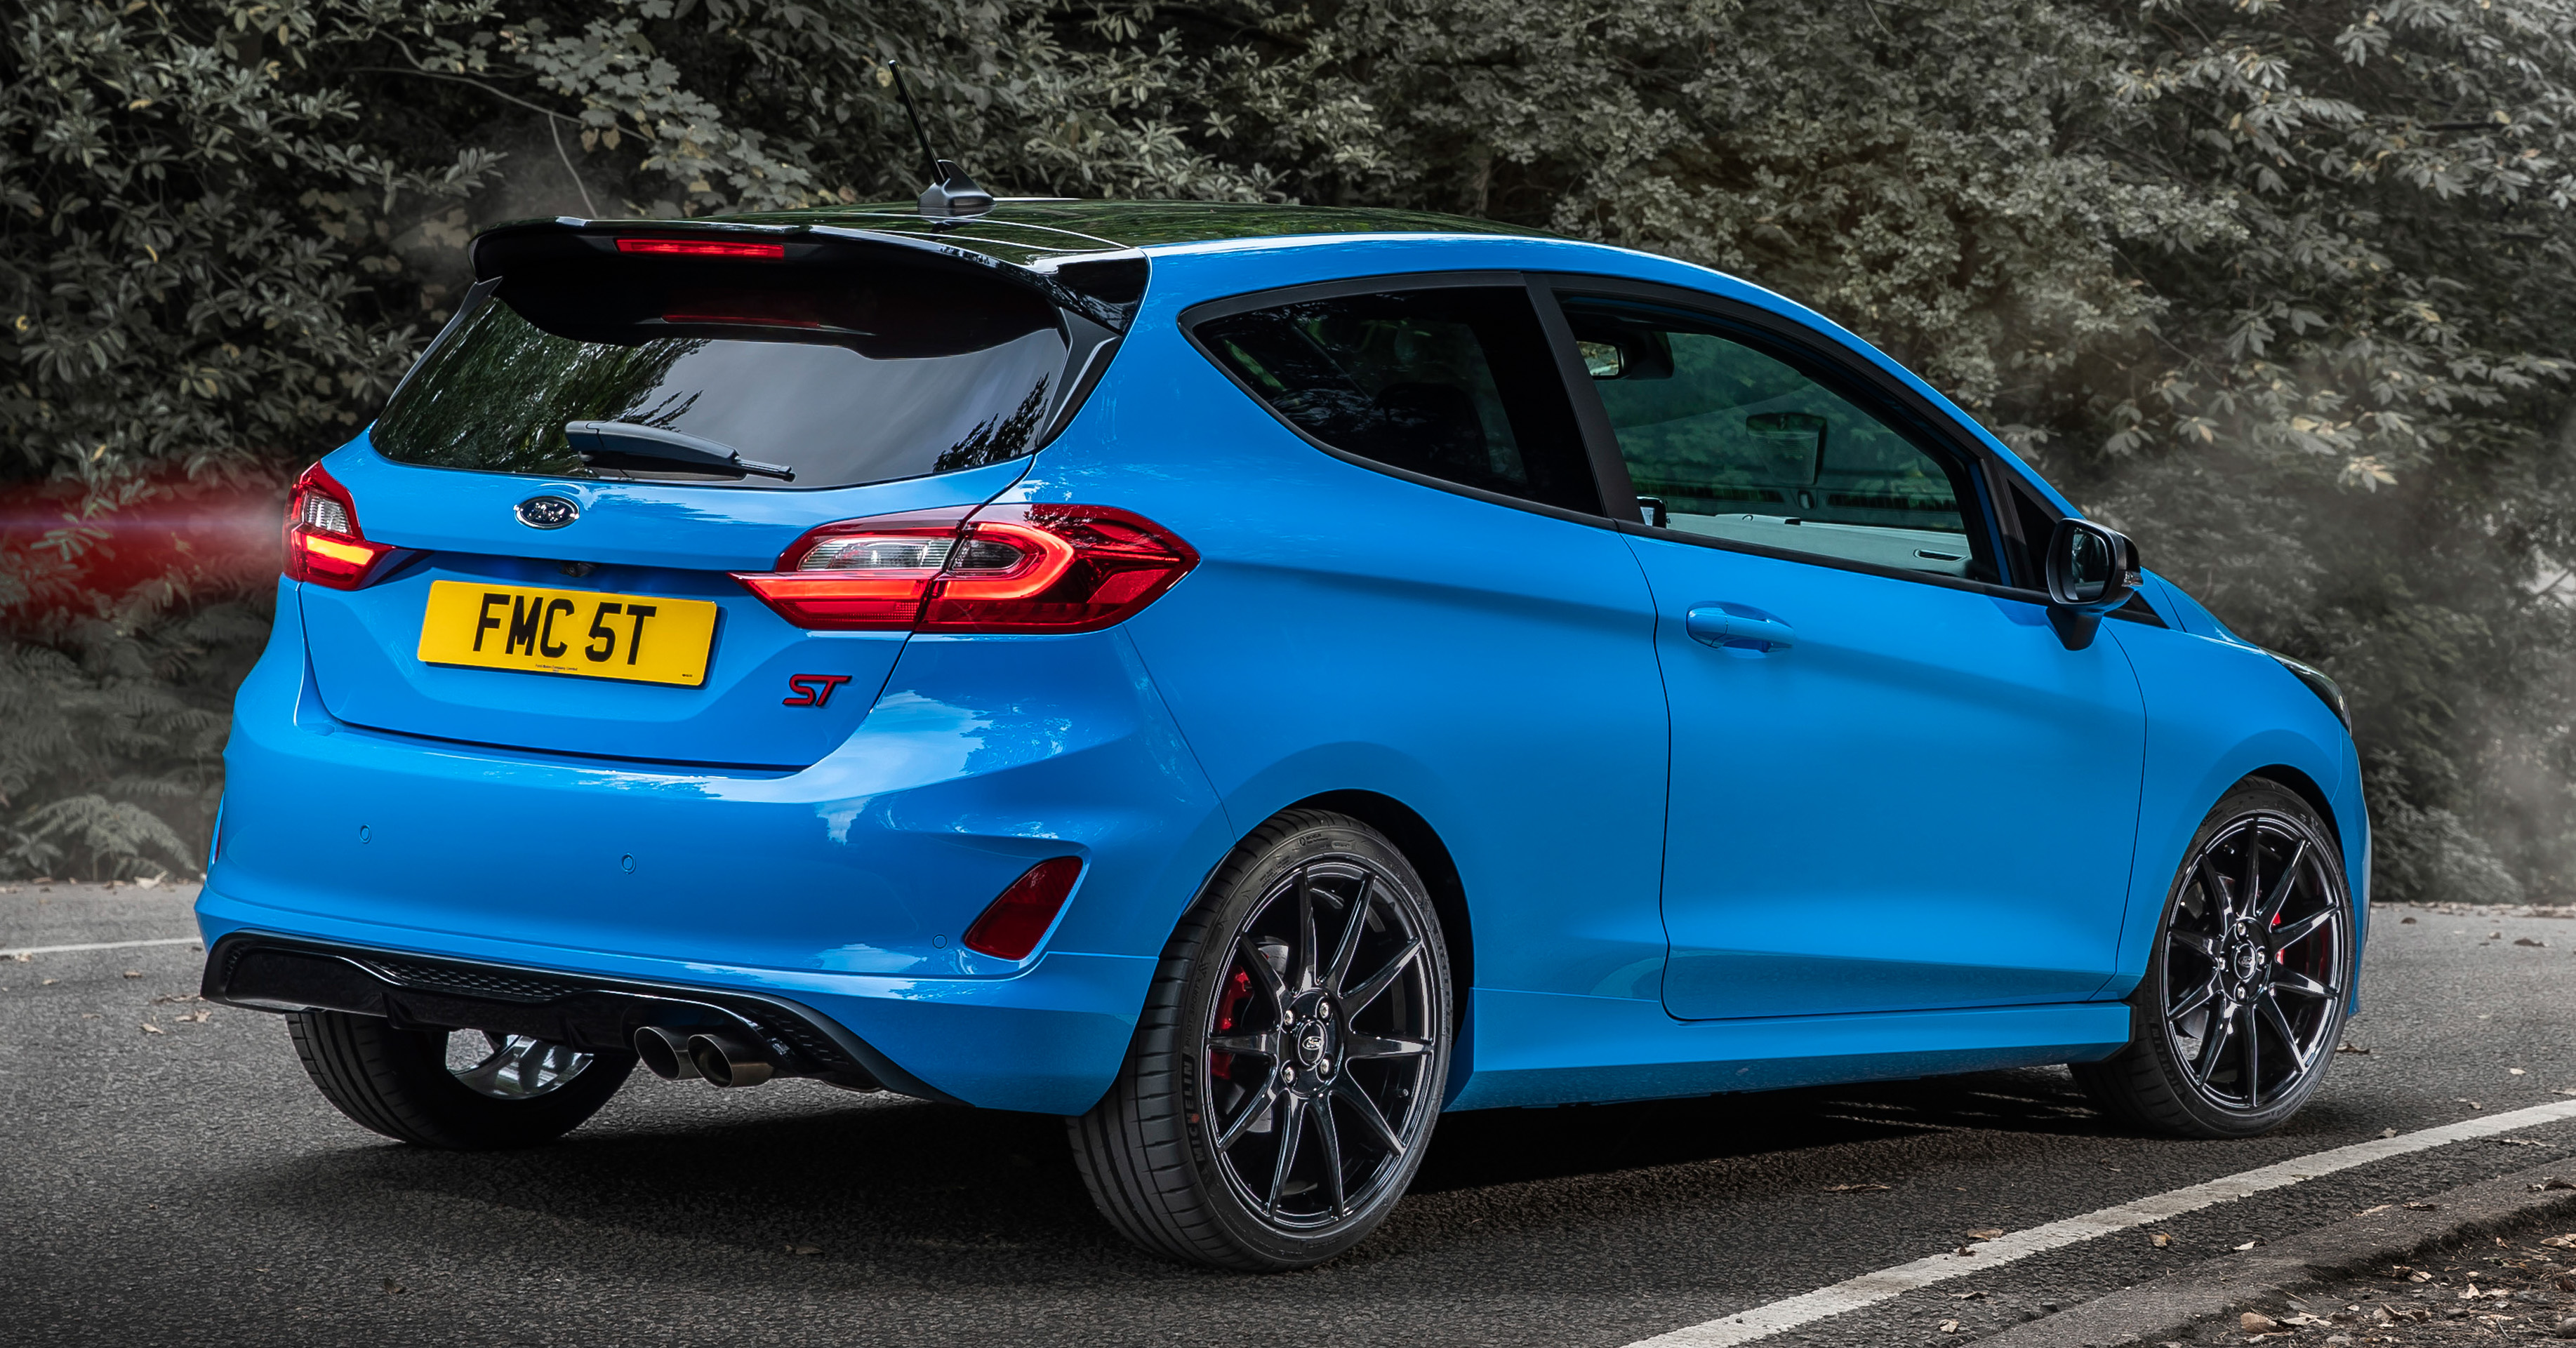 2021 Ford Fiesta ST Edition - 500 units, Europe only 2021 ...